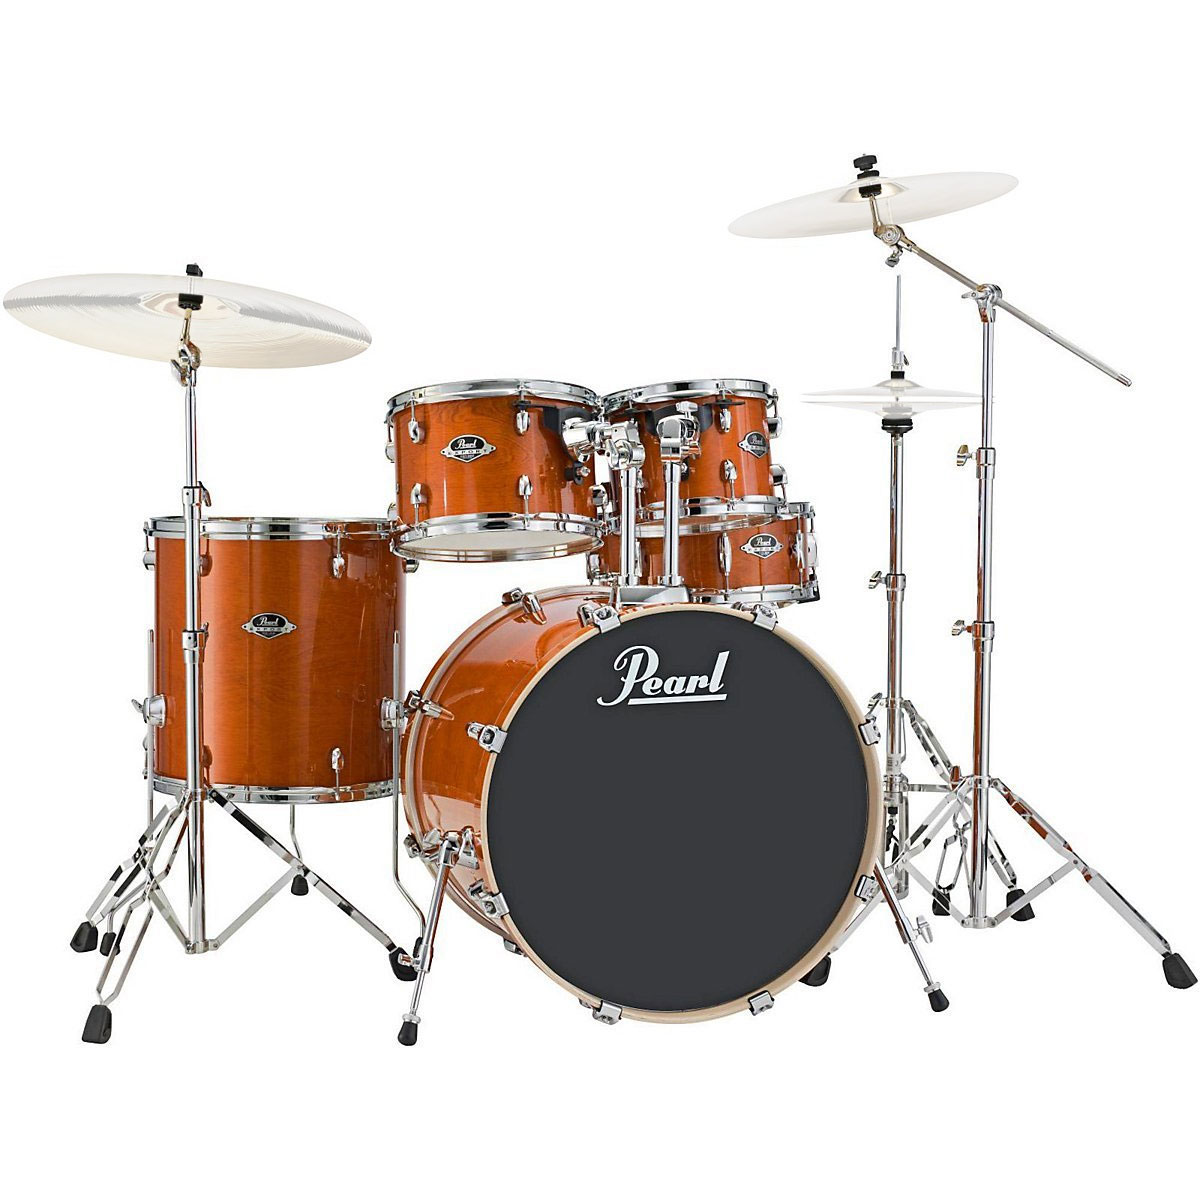 "Pearl EXL Export Lacquer 5-Piece Drum Set with Hardware (20"" Bass, 10/12/14"" Toms, 14"" Snare)"